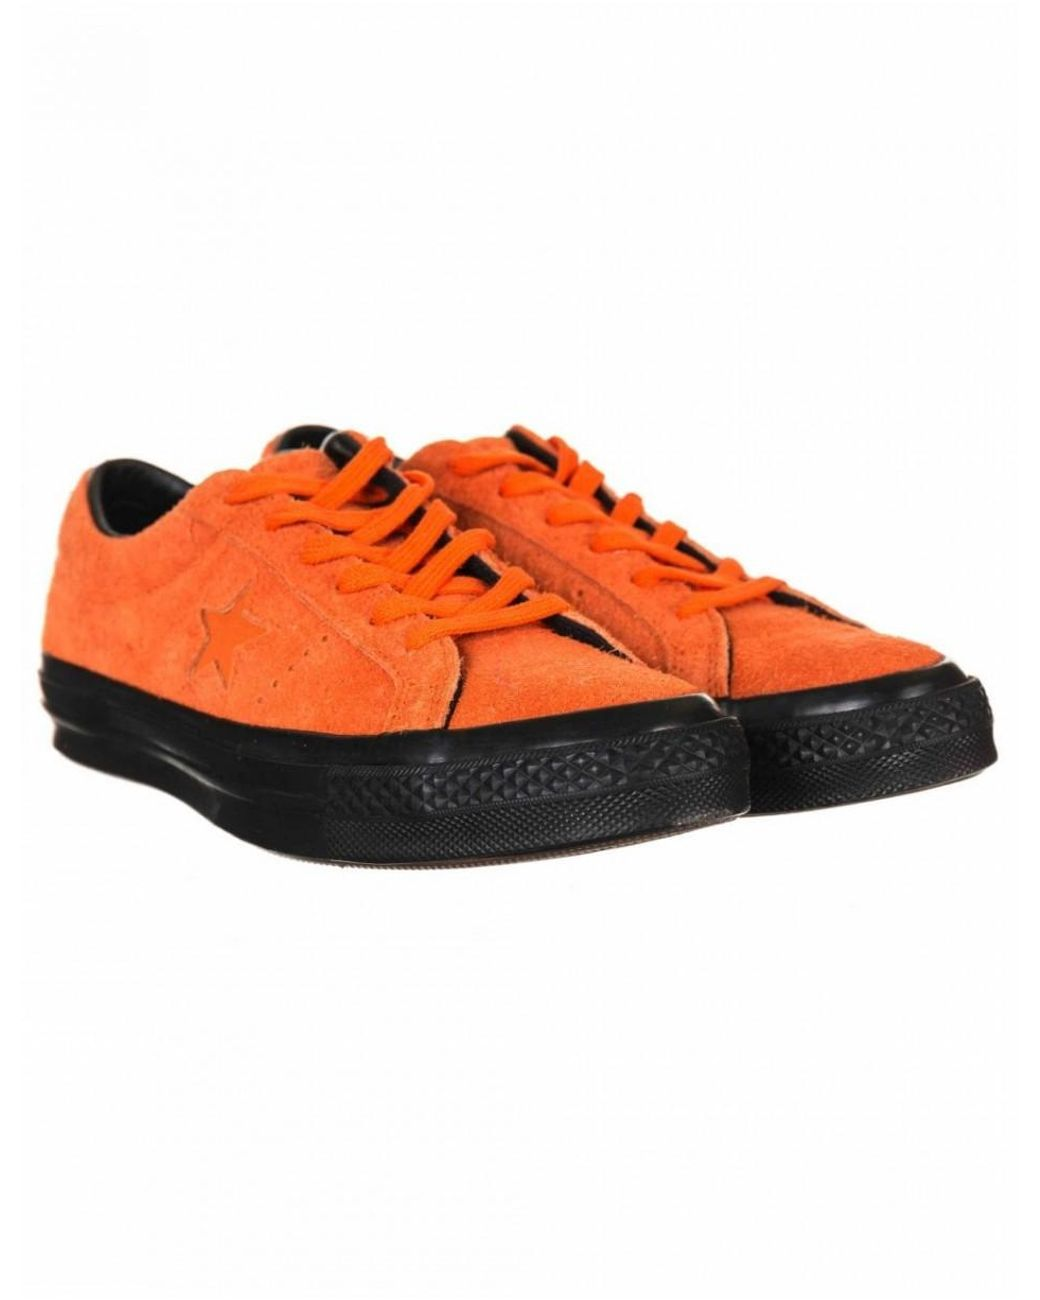 f7efe0c0a627 Converse One Star Ox Trainers in Orange for Men - Lyst